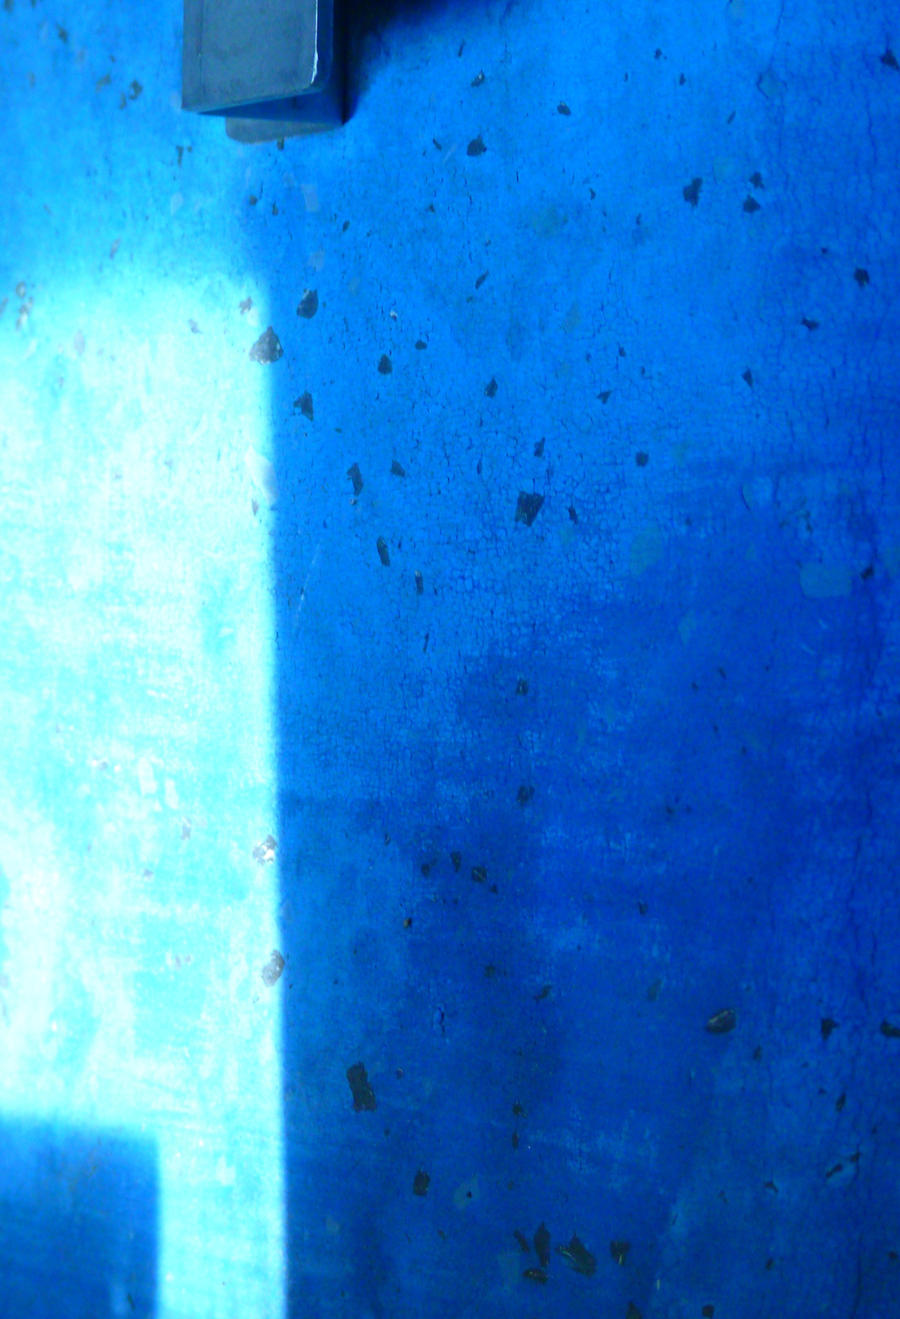 Blue Abstract by daisicalolliwog